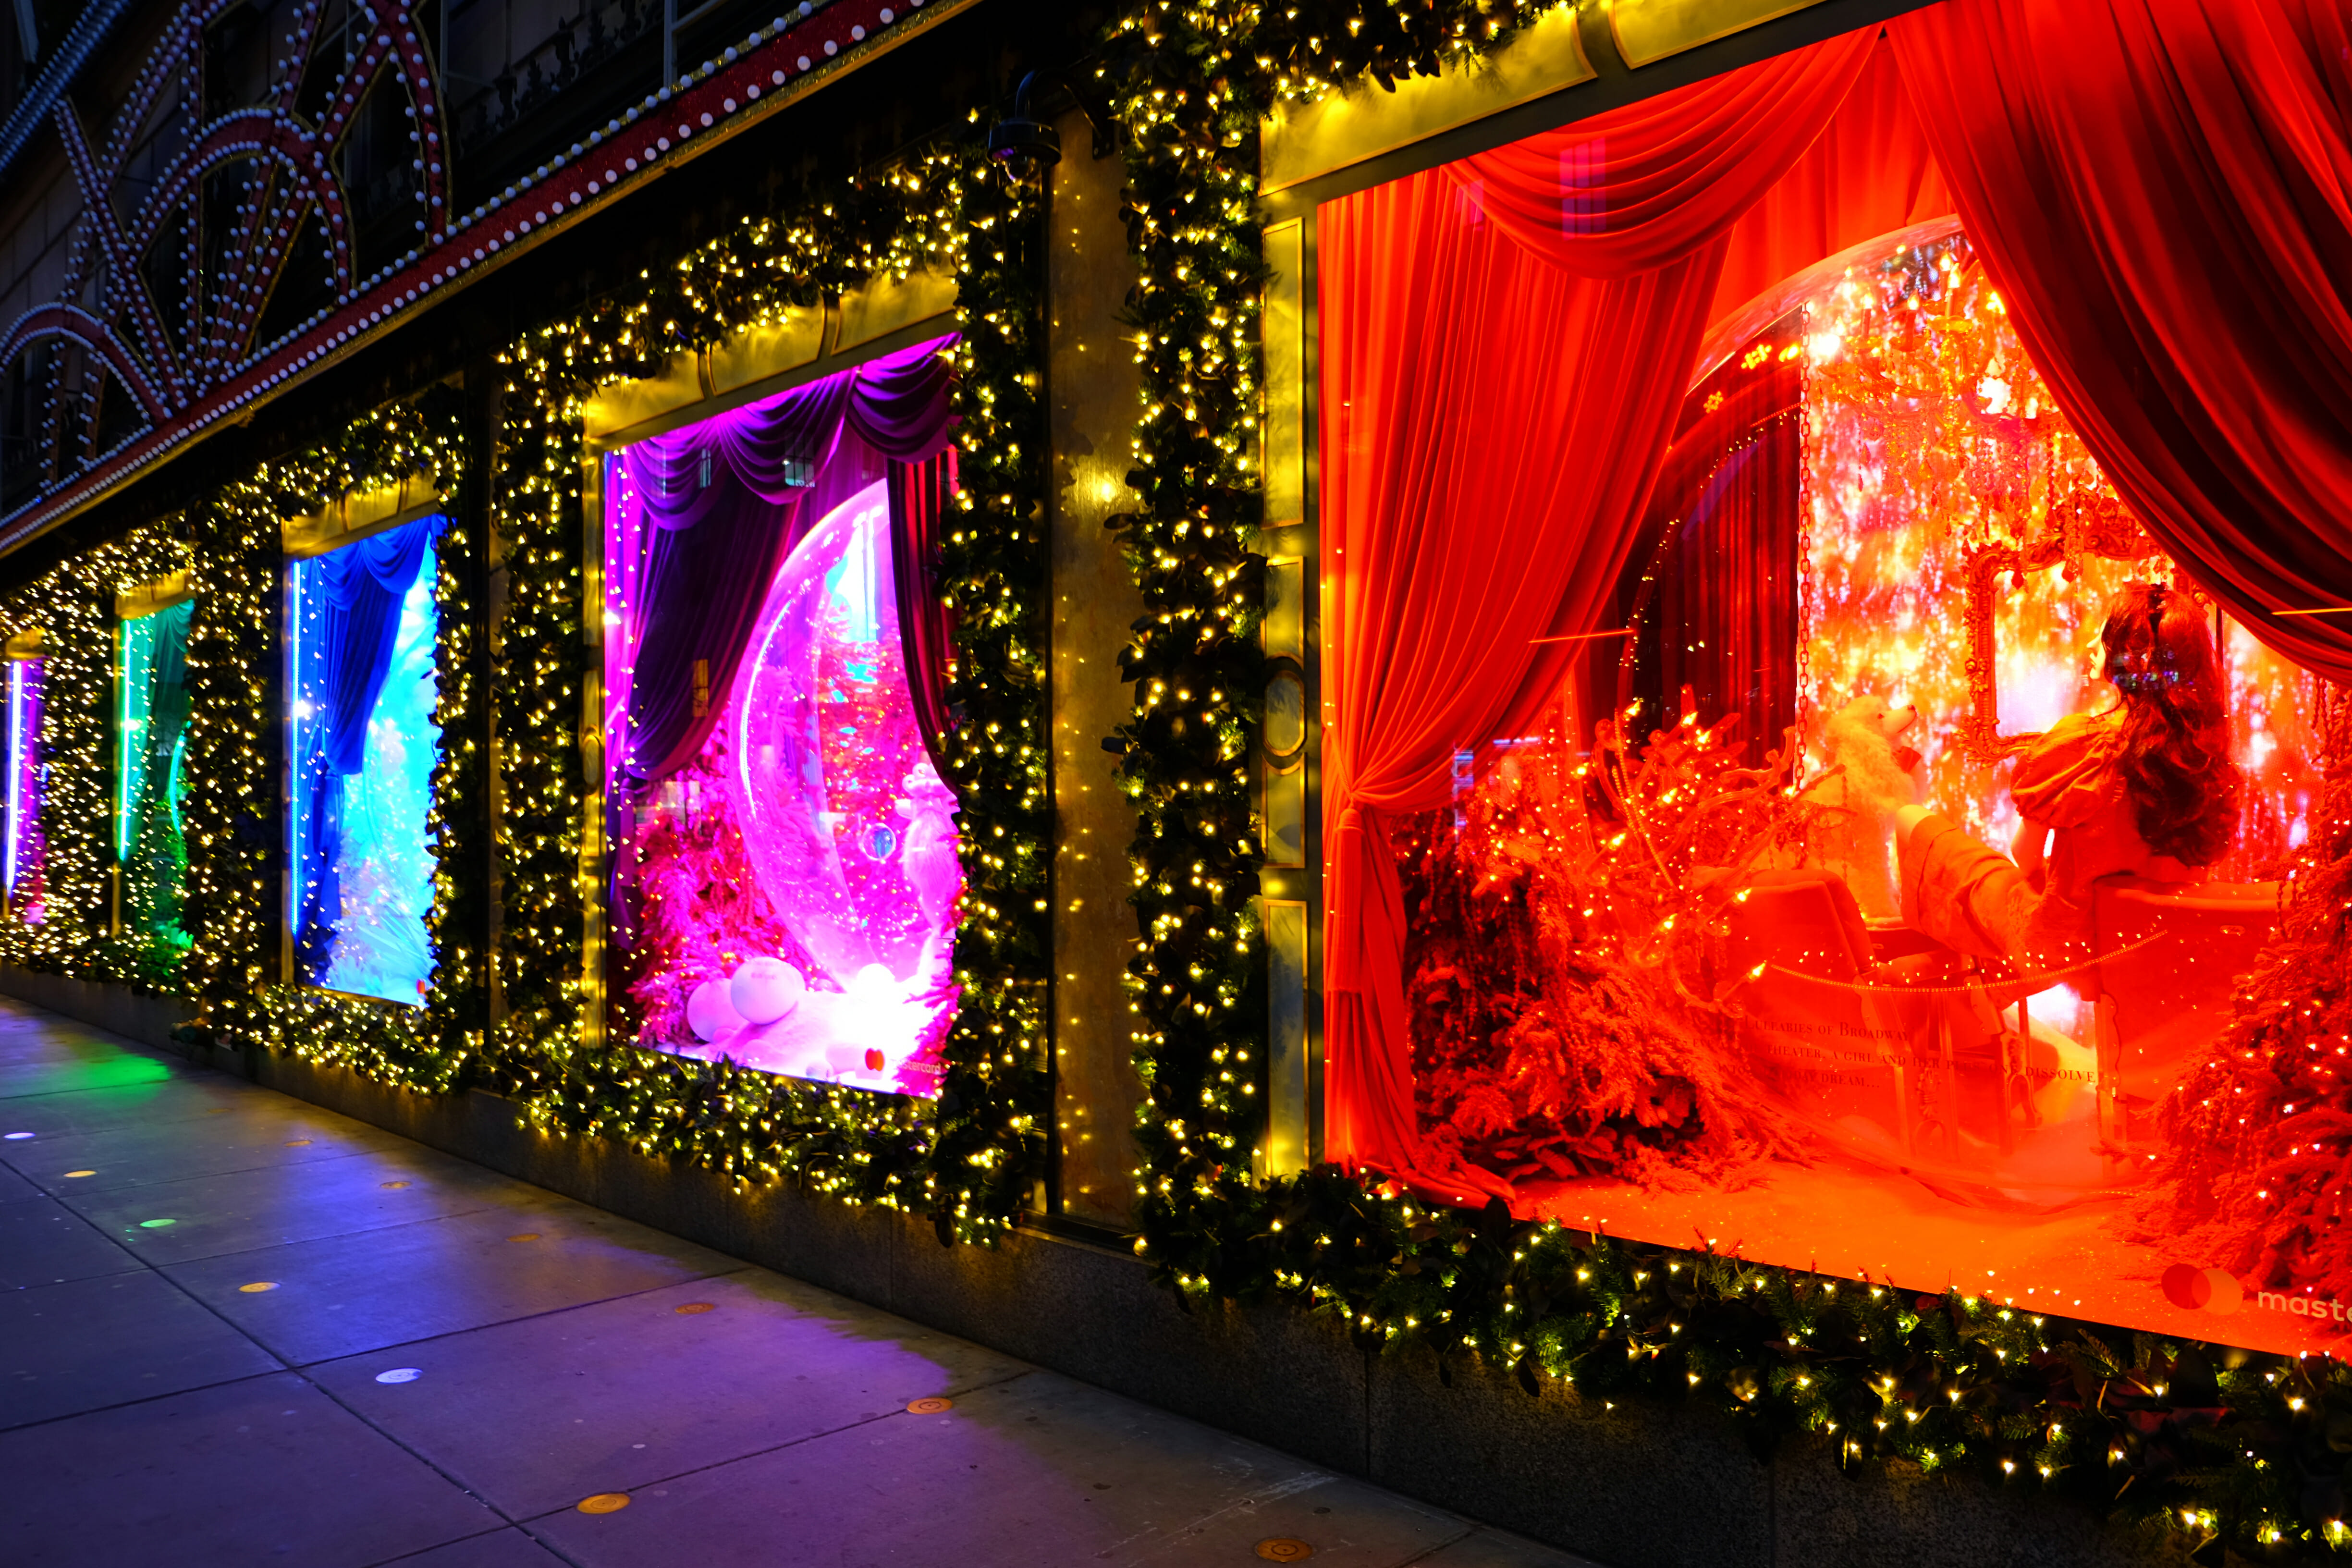 Saks on Fifth Christmas Window Decorations High Quality Wallpaper